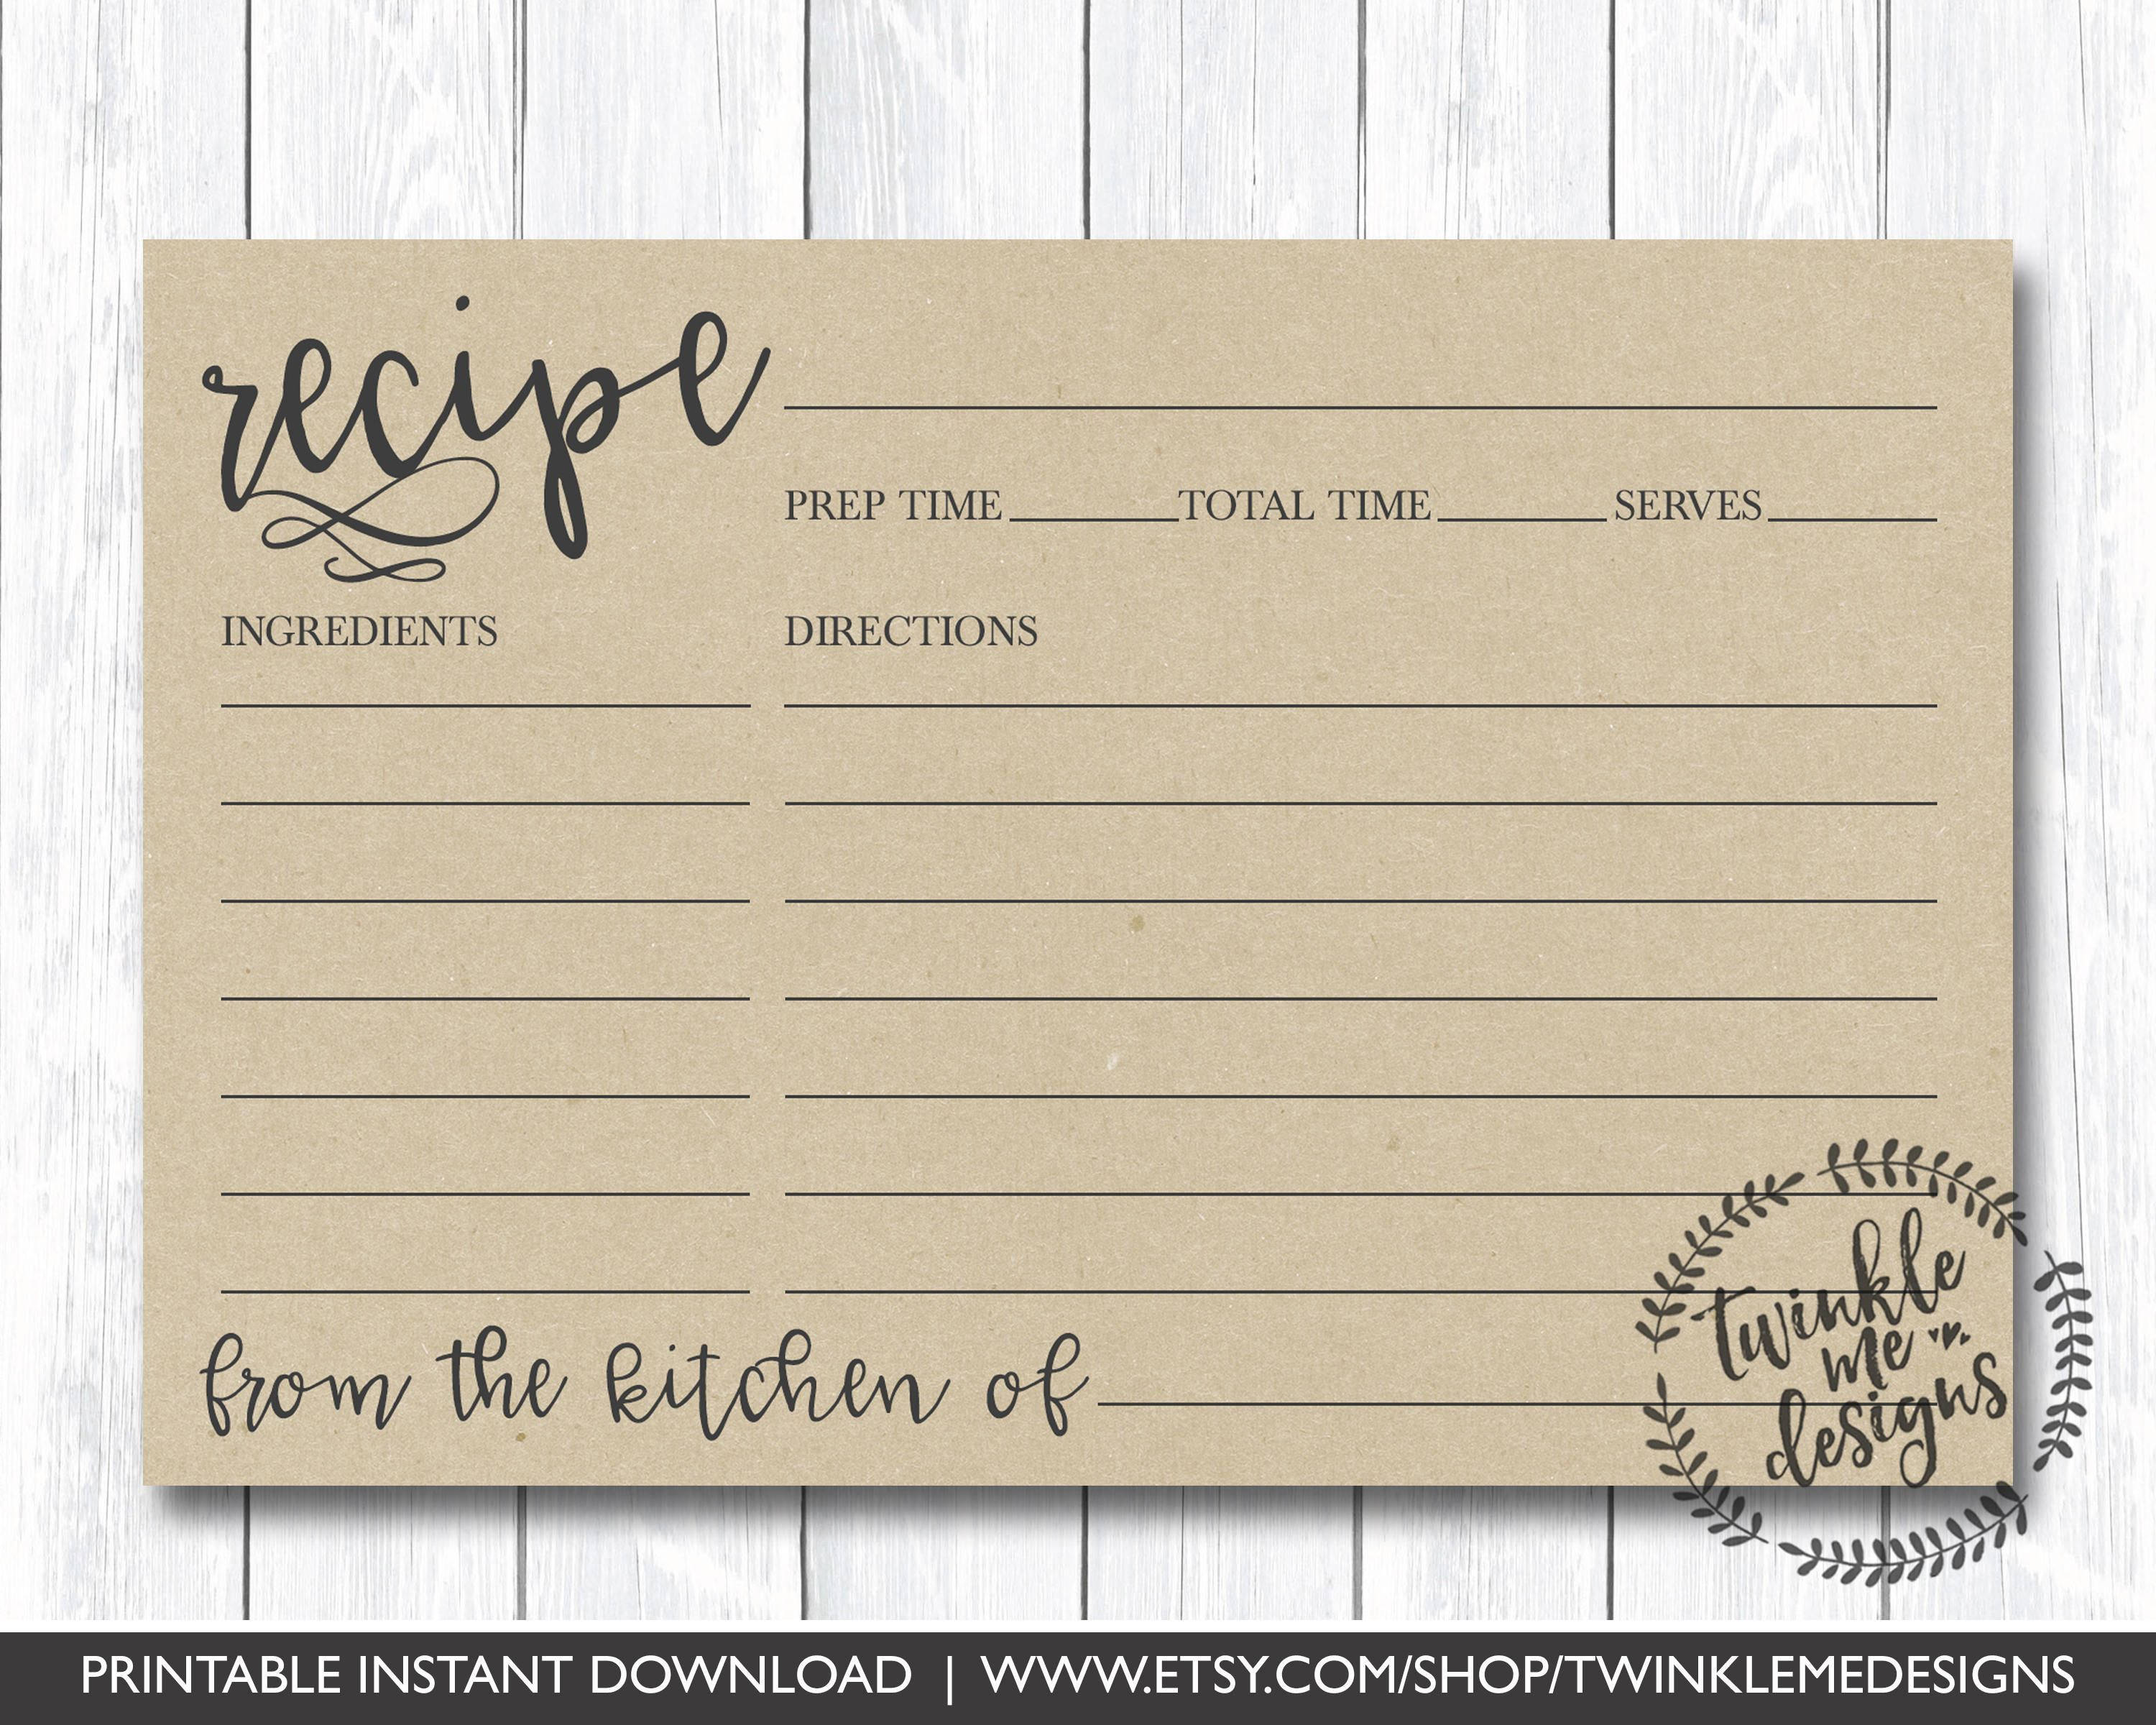 Recipe Card Printable, Printable Recipe Card, DIY Recipe Cards